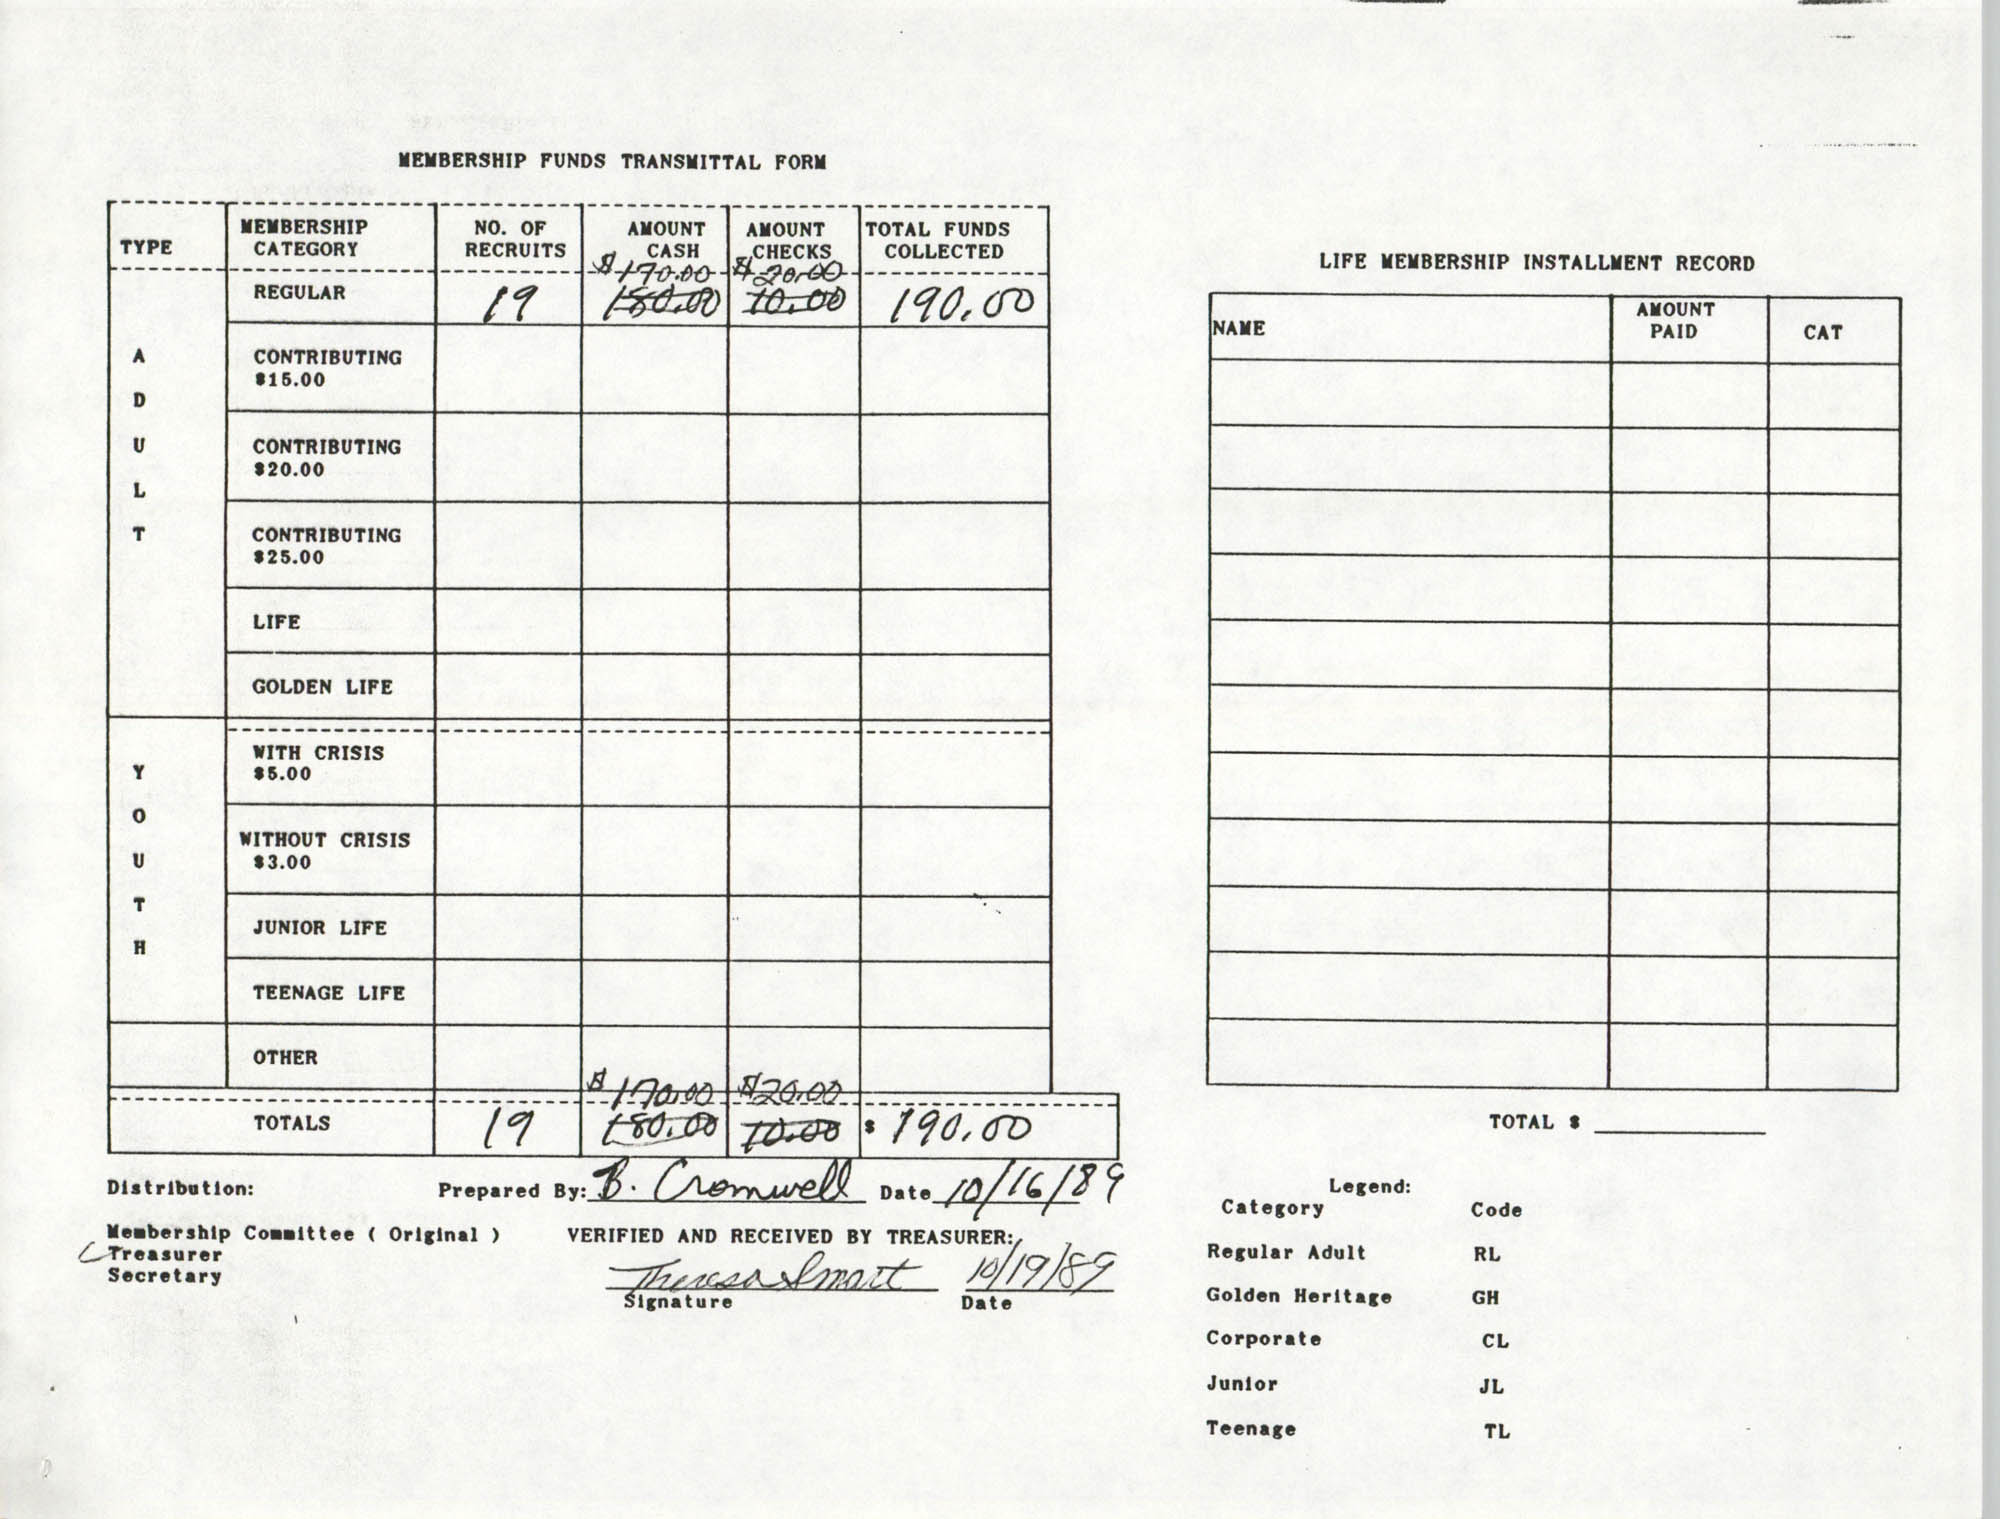 Charleston Branch of the NAACP Funds Transmittal Forms, October 1989, Page 5